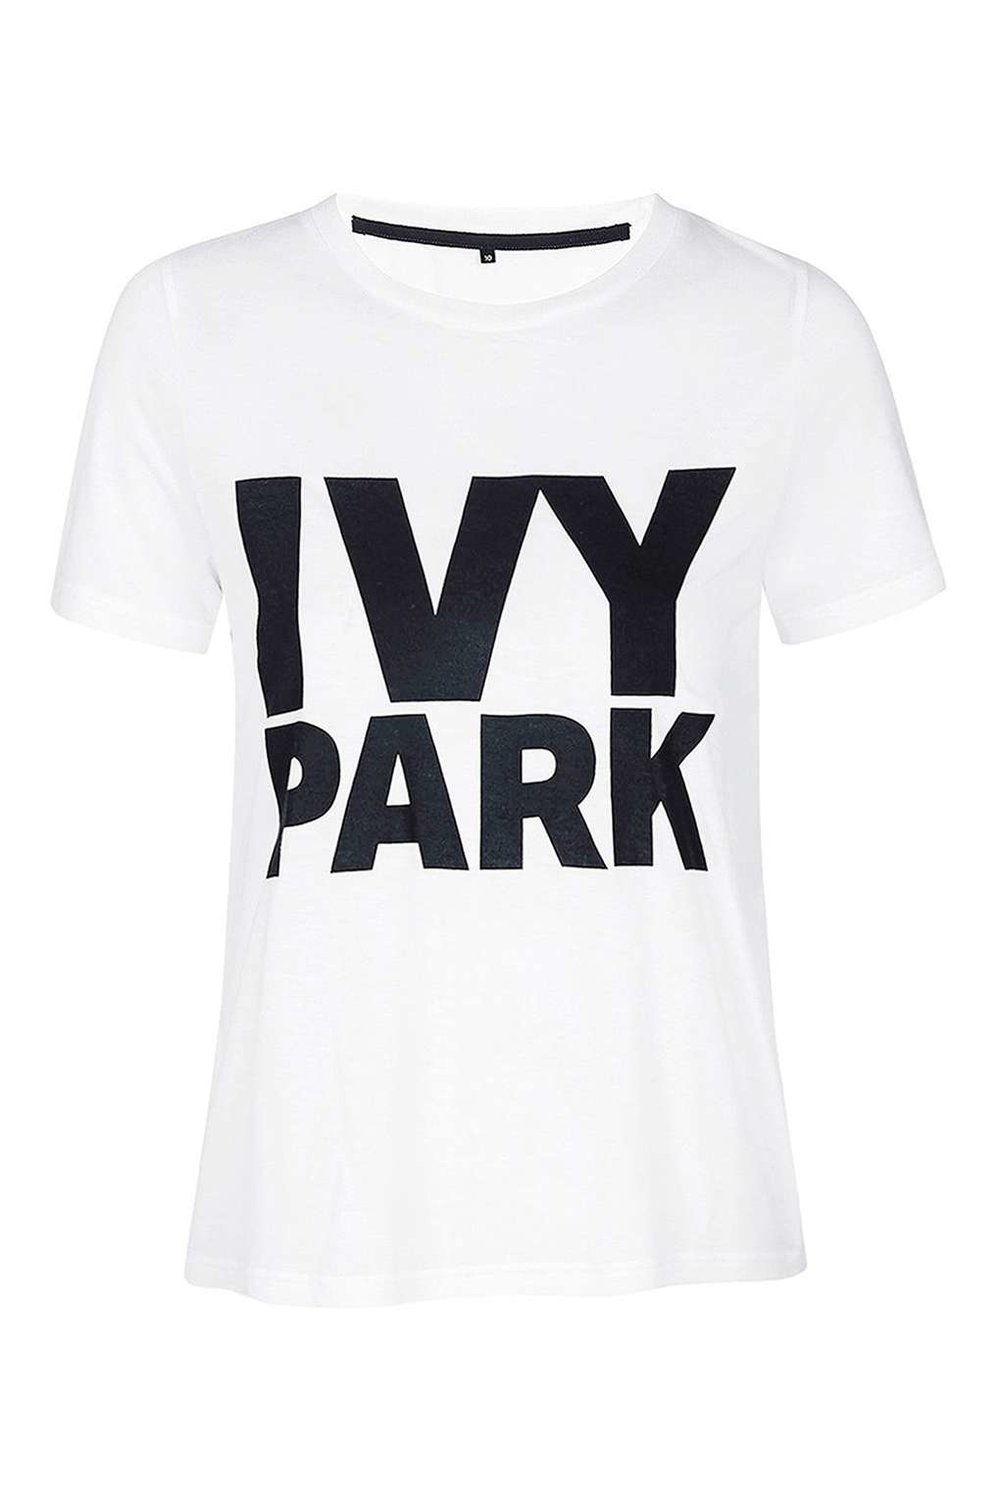 Logo Crew Neck Tee by Ivy Park